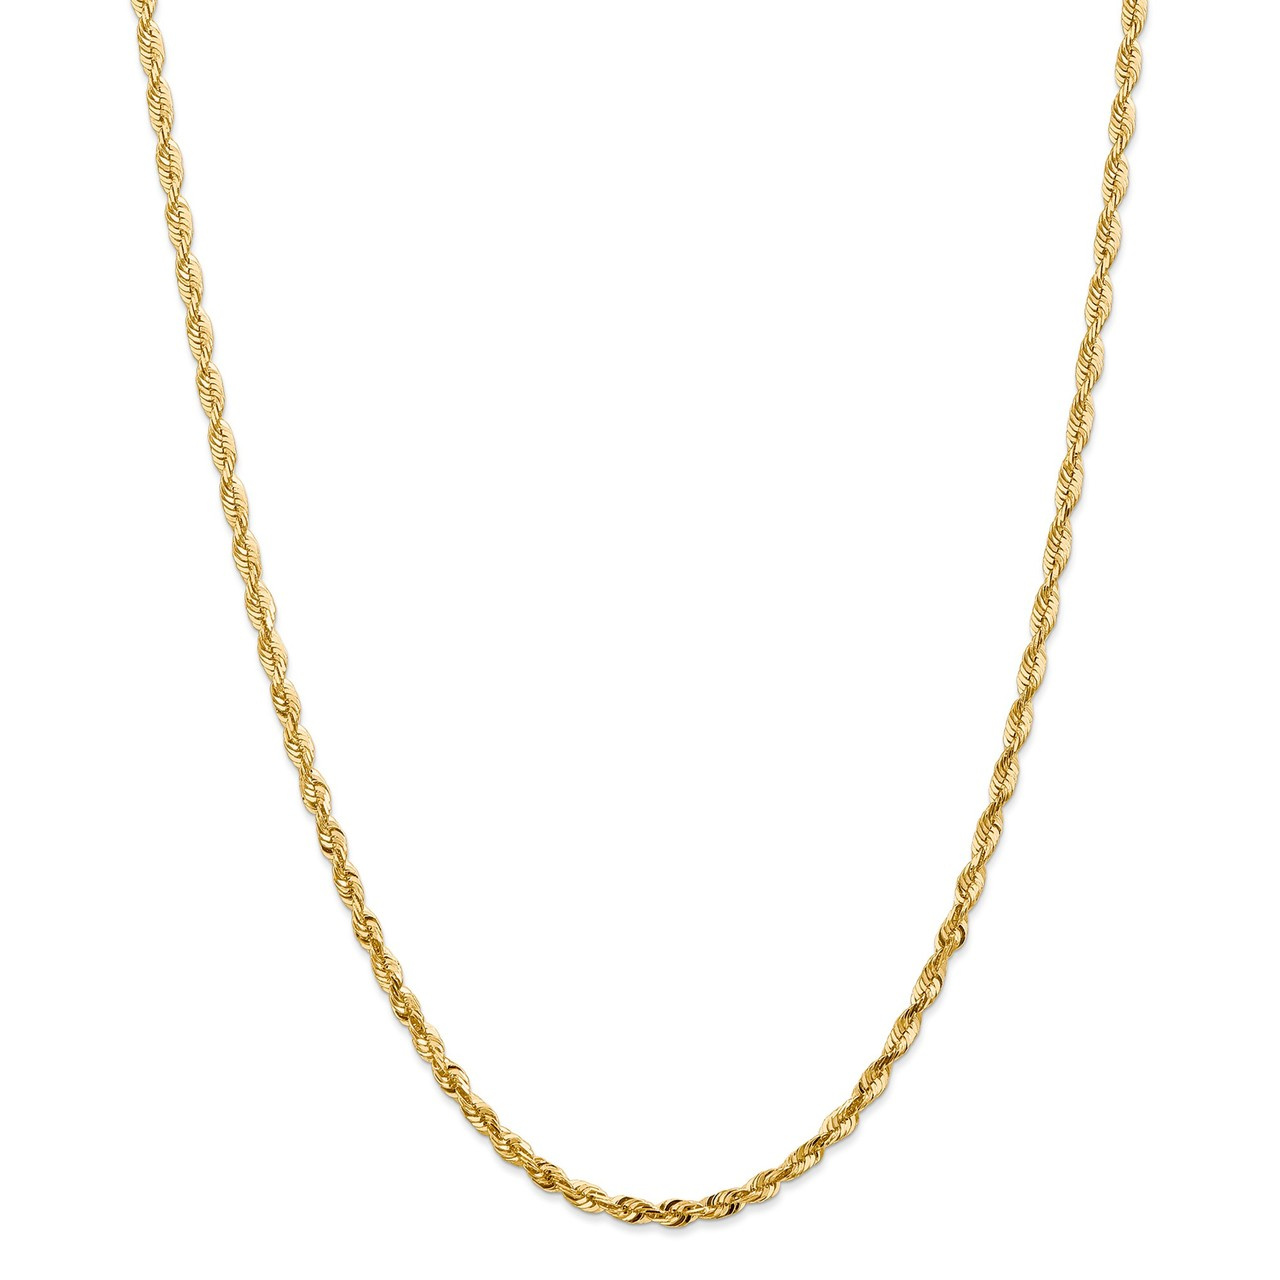 Lex & Lu 14k Yellow Gold 4mm D C extra-Light Rope Chain Necklace or Bracelet by